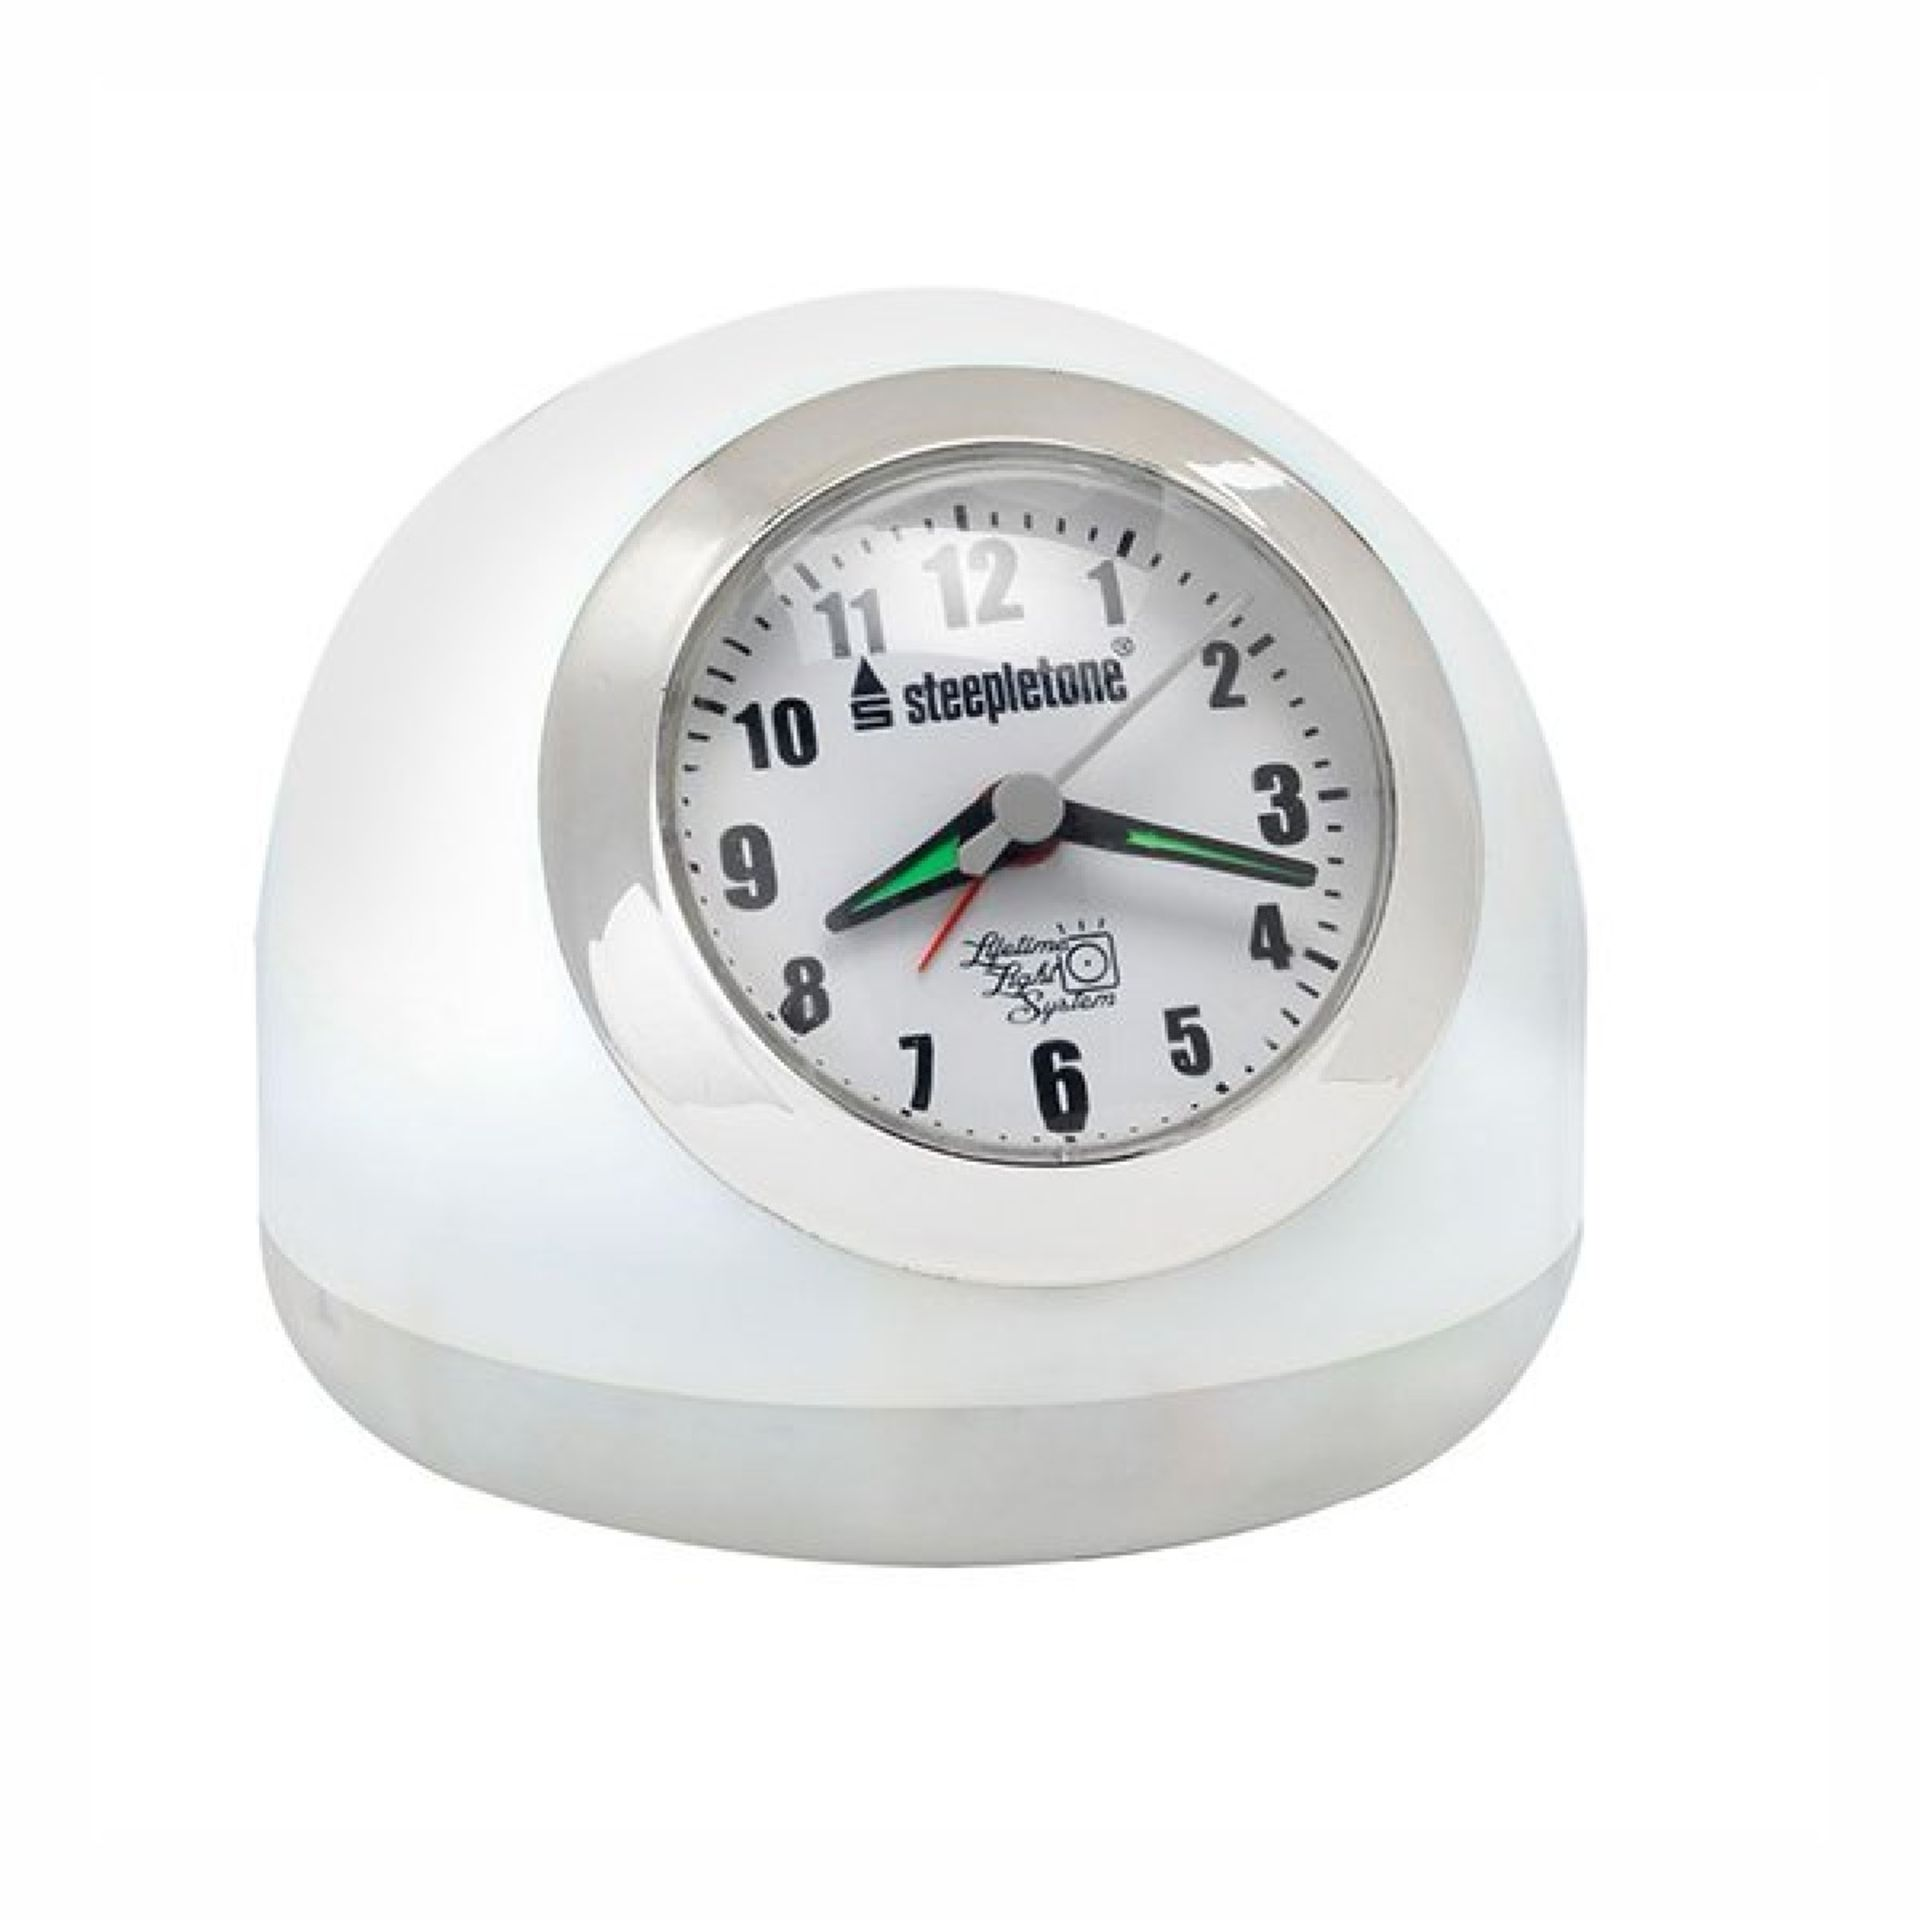 Lot 43017 - V Brand New LED Touch Controlled Clock Alarm With Radio & Touch Control White & Mood Lighting (Radio